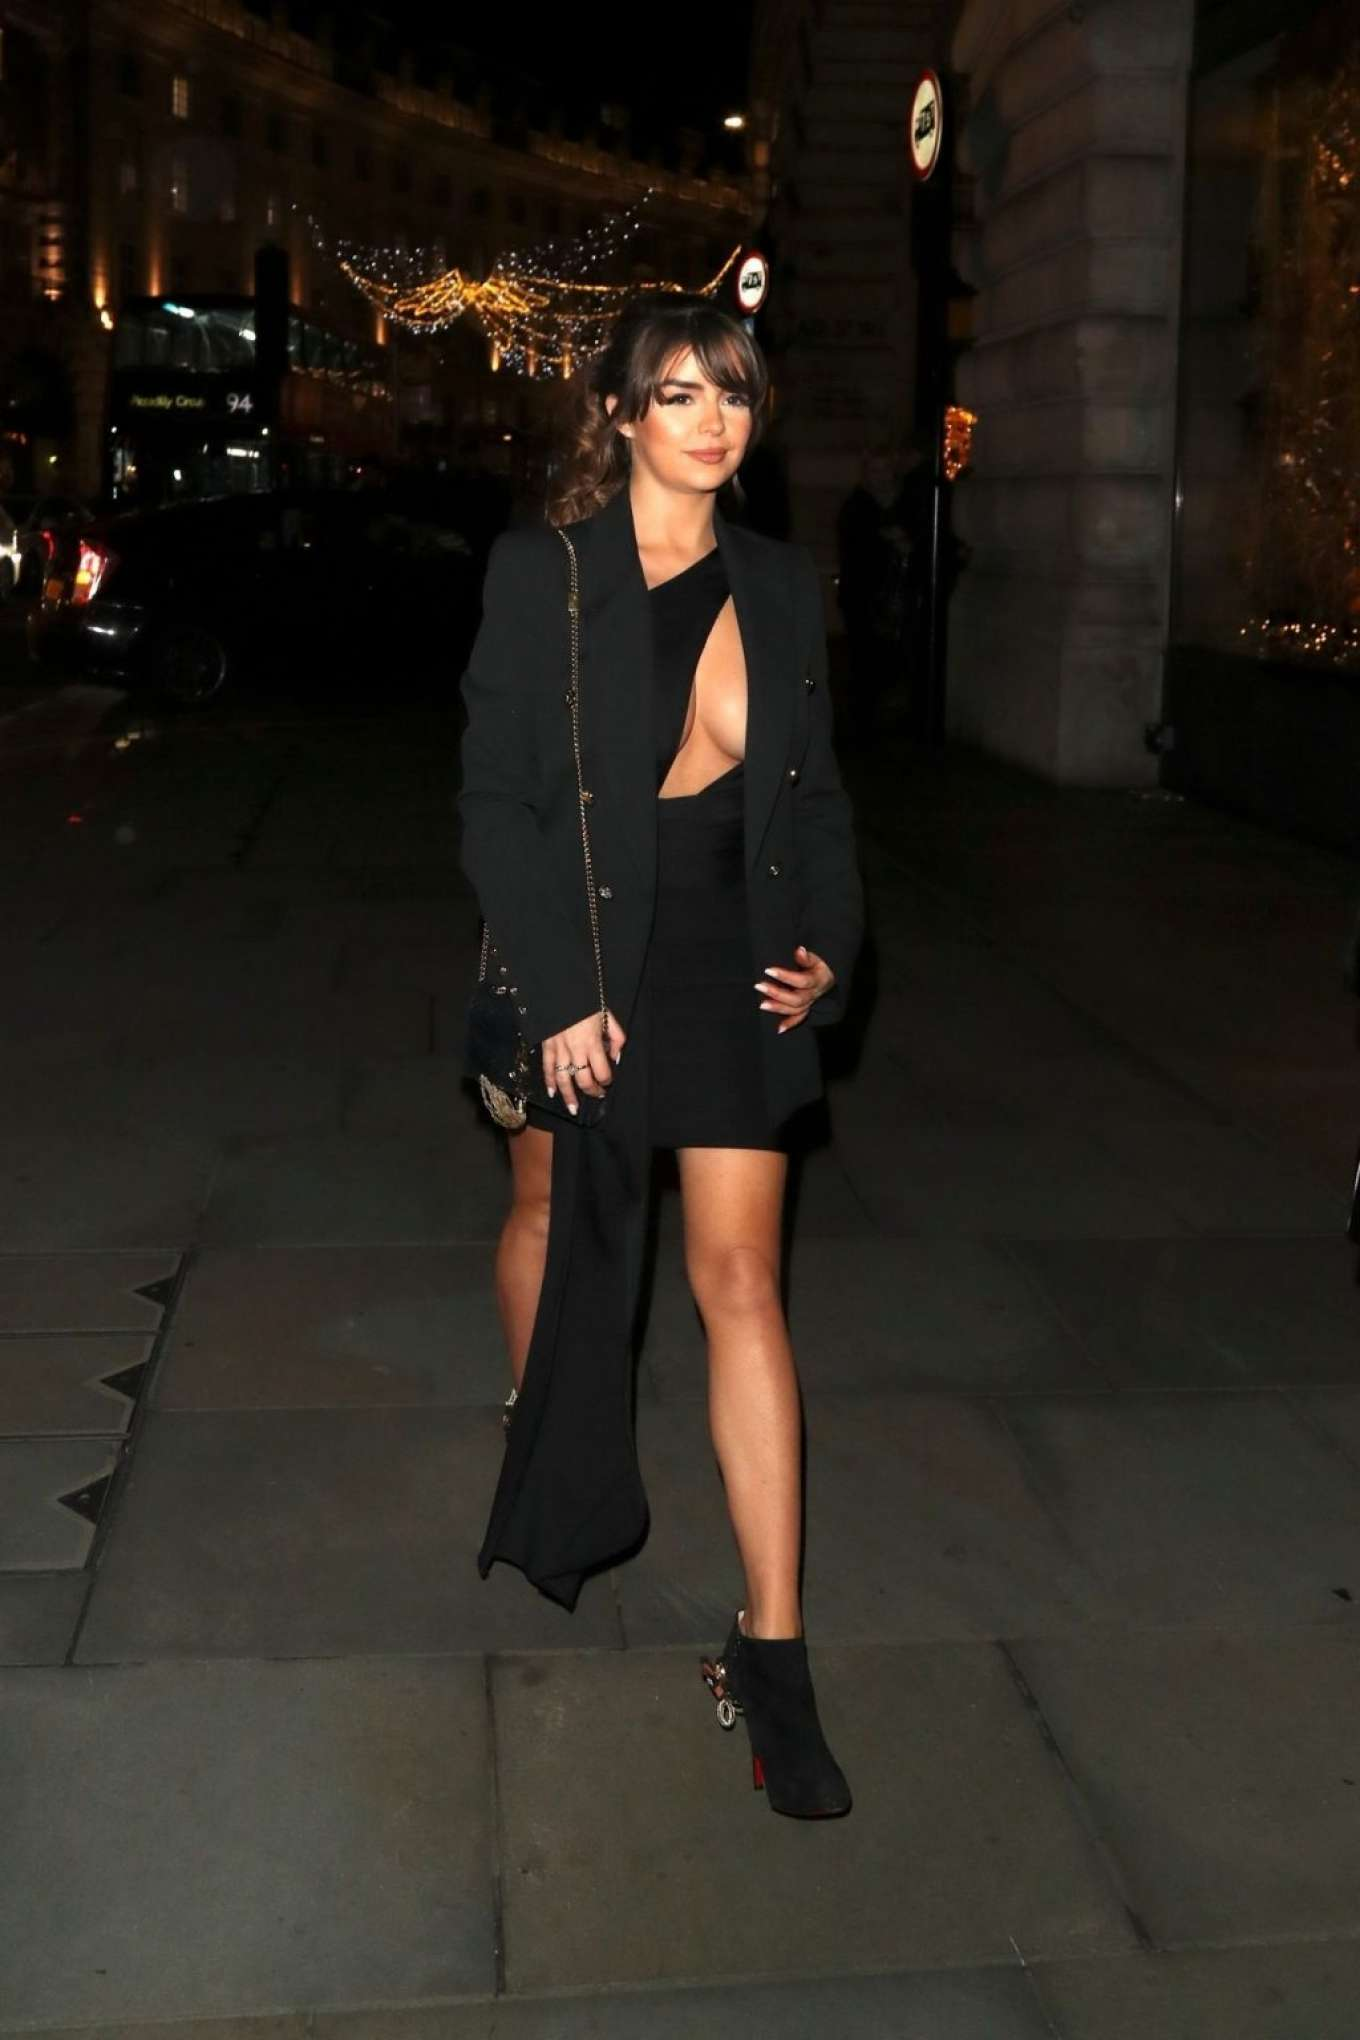 Demi Rose Mawby 2019 : Demi Rose Mawby was pictured while arriving at Cafe Royal in London-43